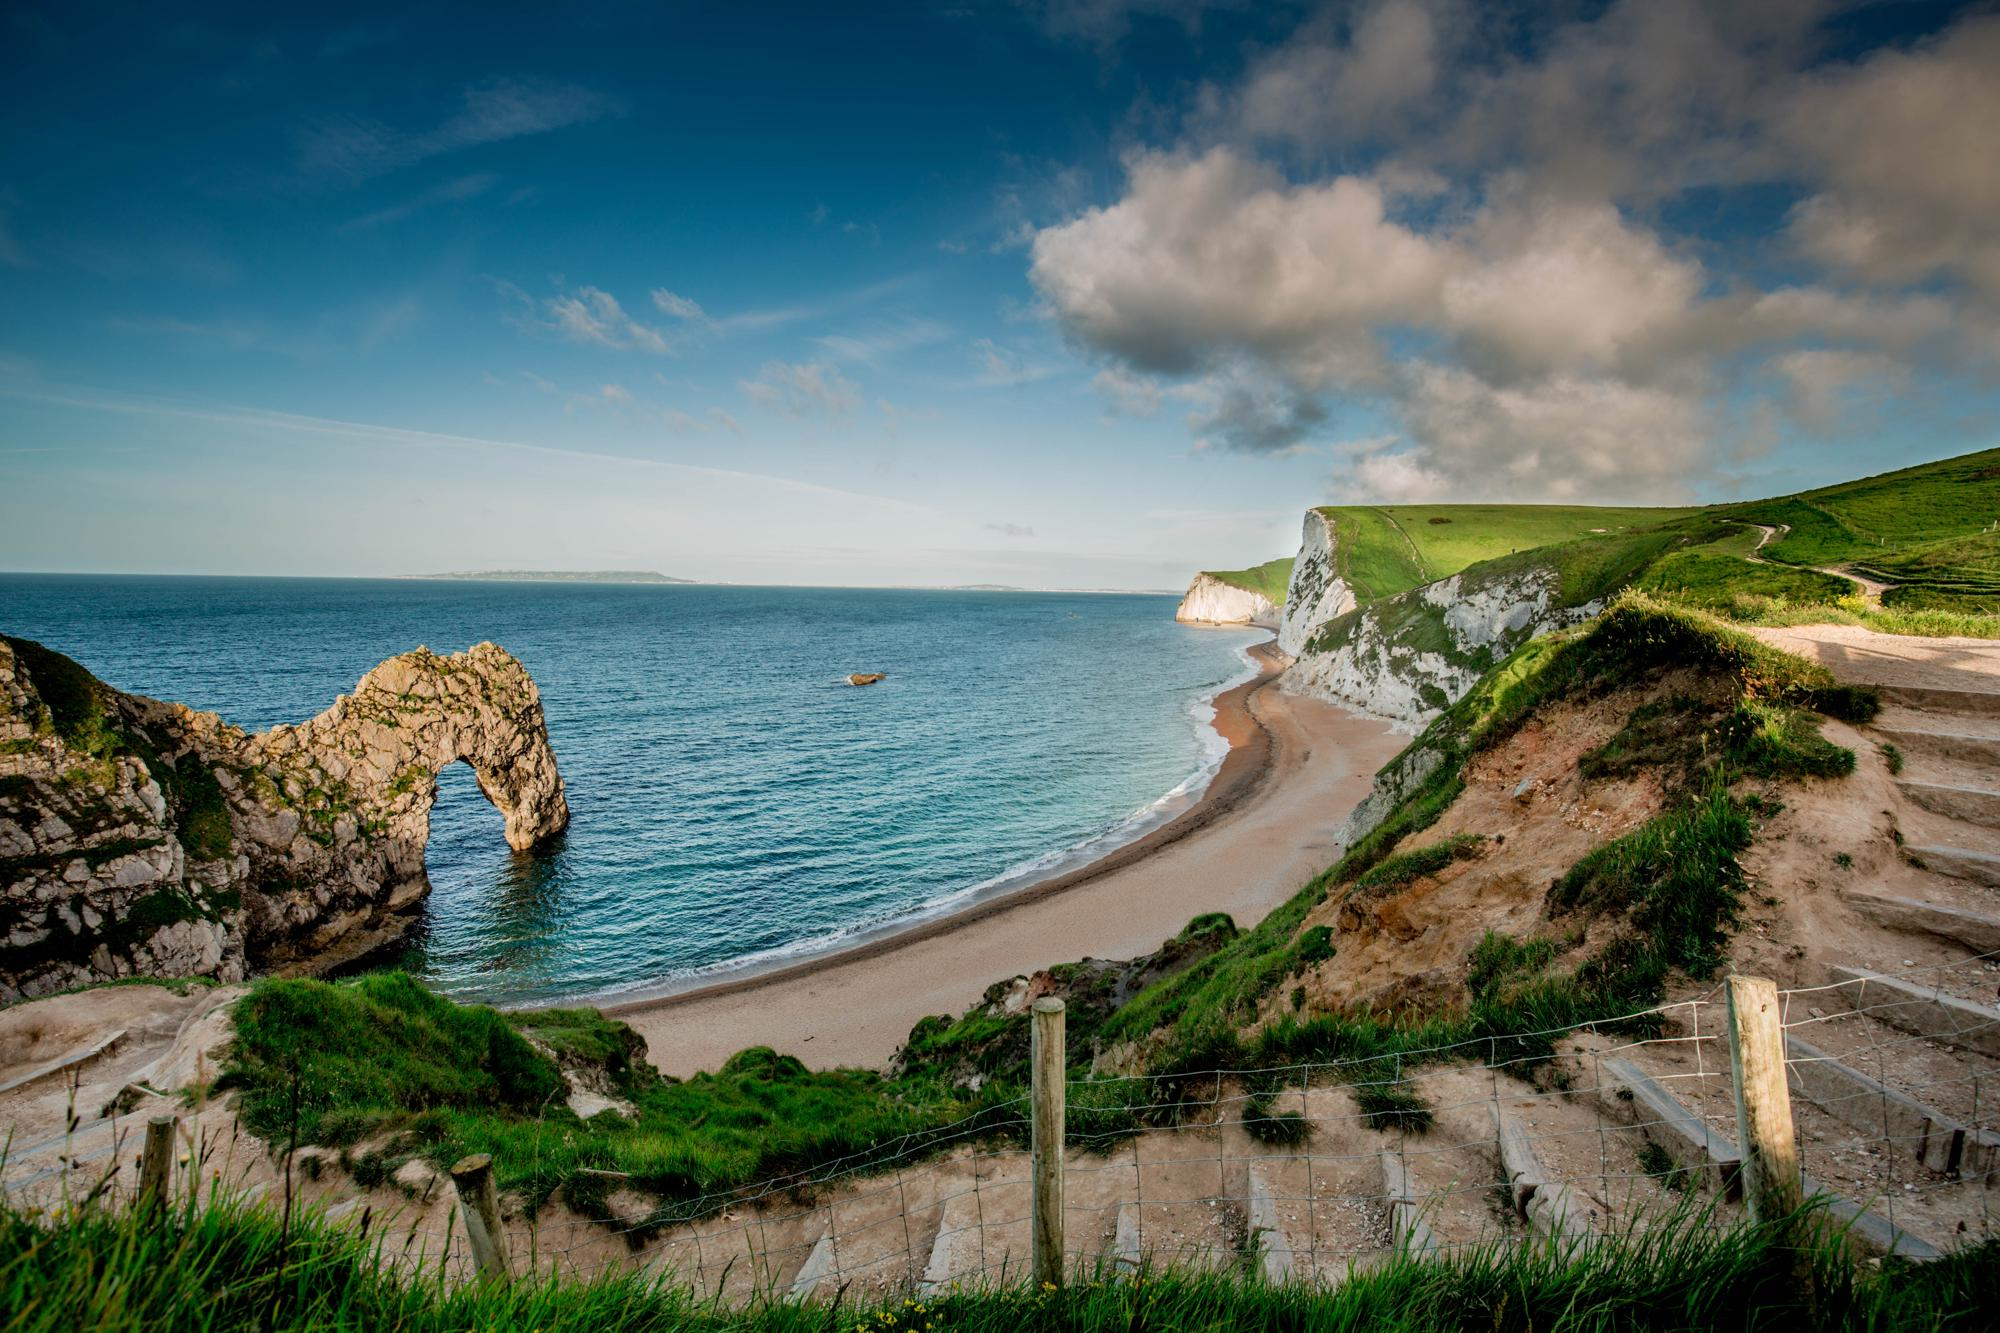 Durdle Door Camping – Campsites near Durdle Door, Dorset